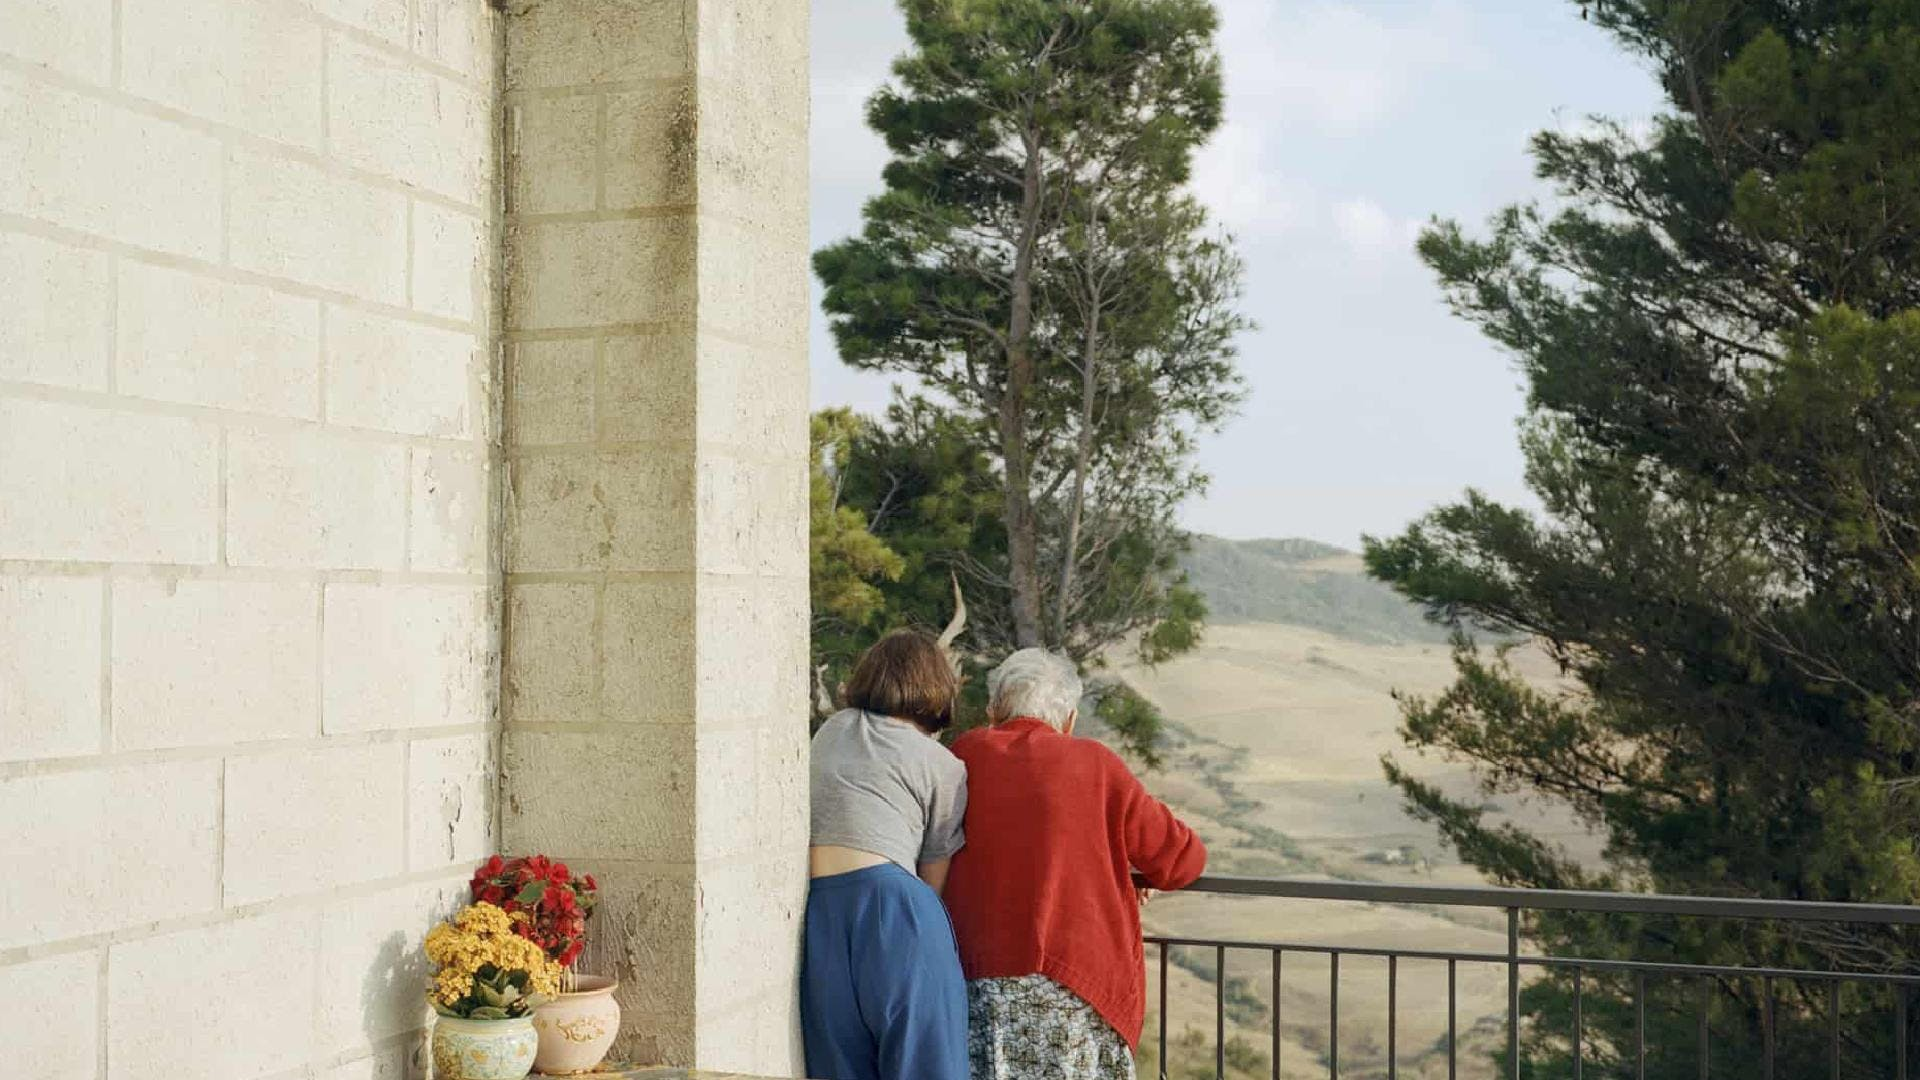 I ZII: INTIMATE PORTRAYAL OF SICILIAN LIFE WITH LINDA BROWNLEE & AISLING FARINELLA